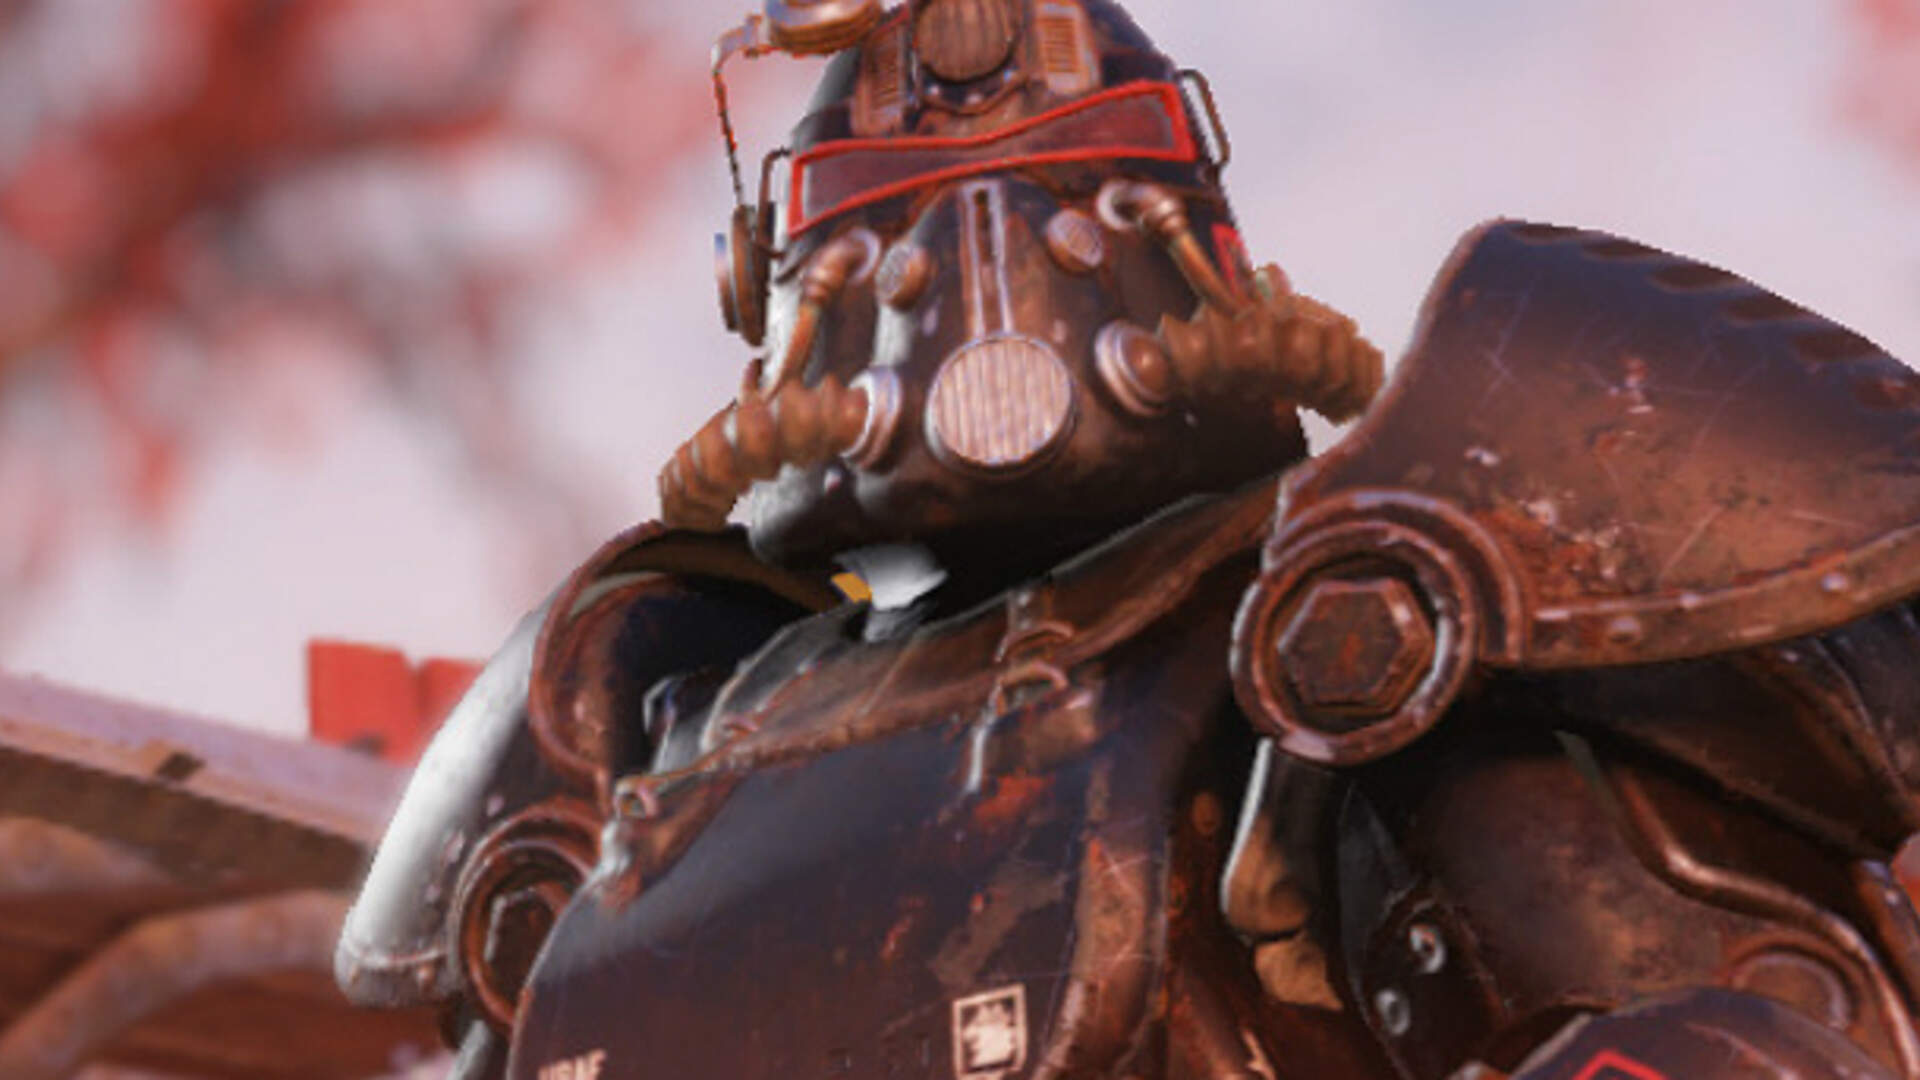 Fallout 76 Nukes Codes This Week Jan 28 - How to Launch Nukes, Decrypt Codes